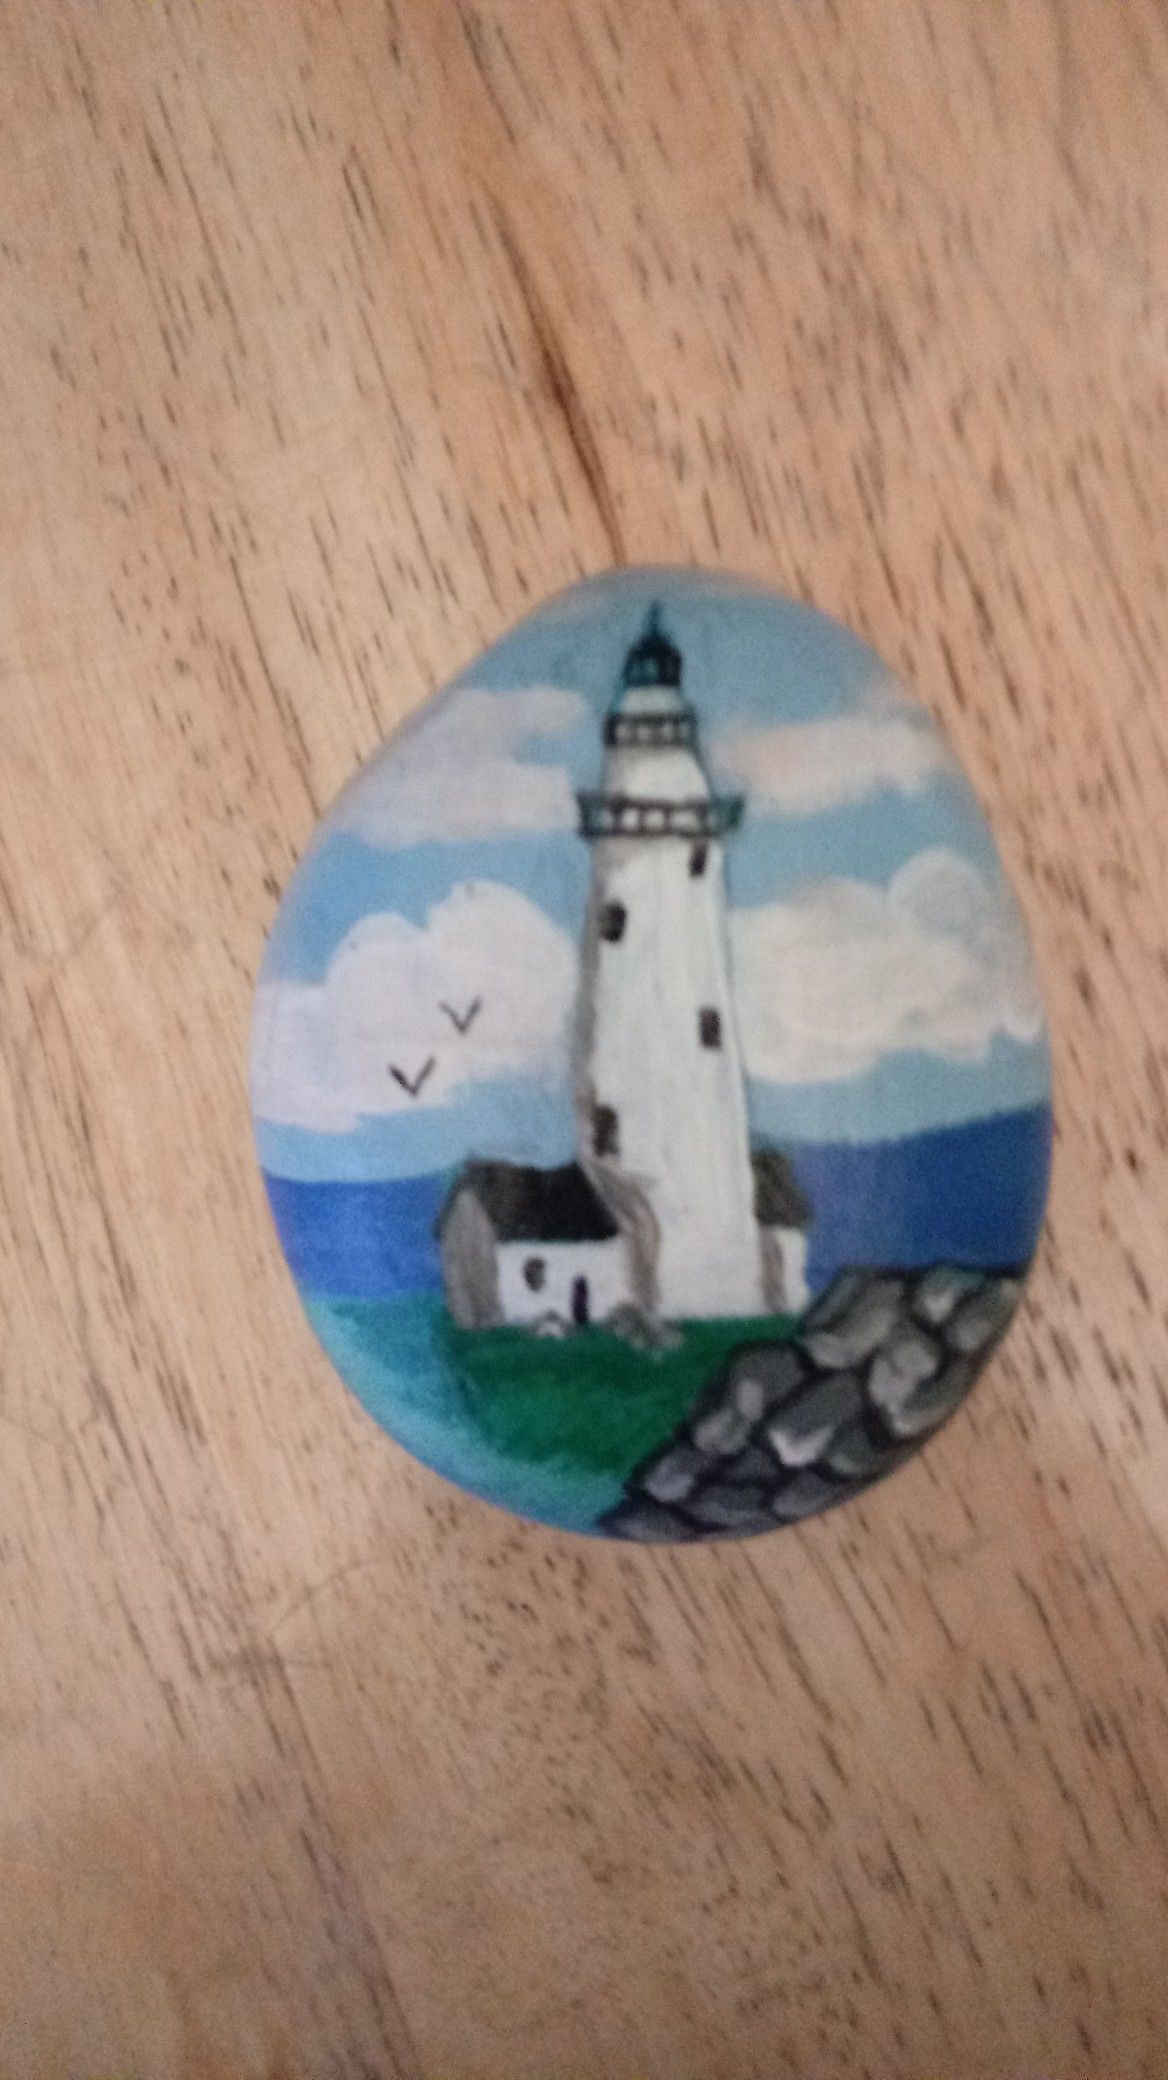 Boston harbor lighthouse hand painted stone for sale on etsy set boston harbor lighthouse hand painted stone for sale on etsy set in stone new sciox Image collections